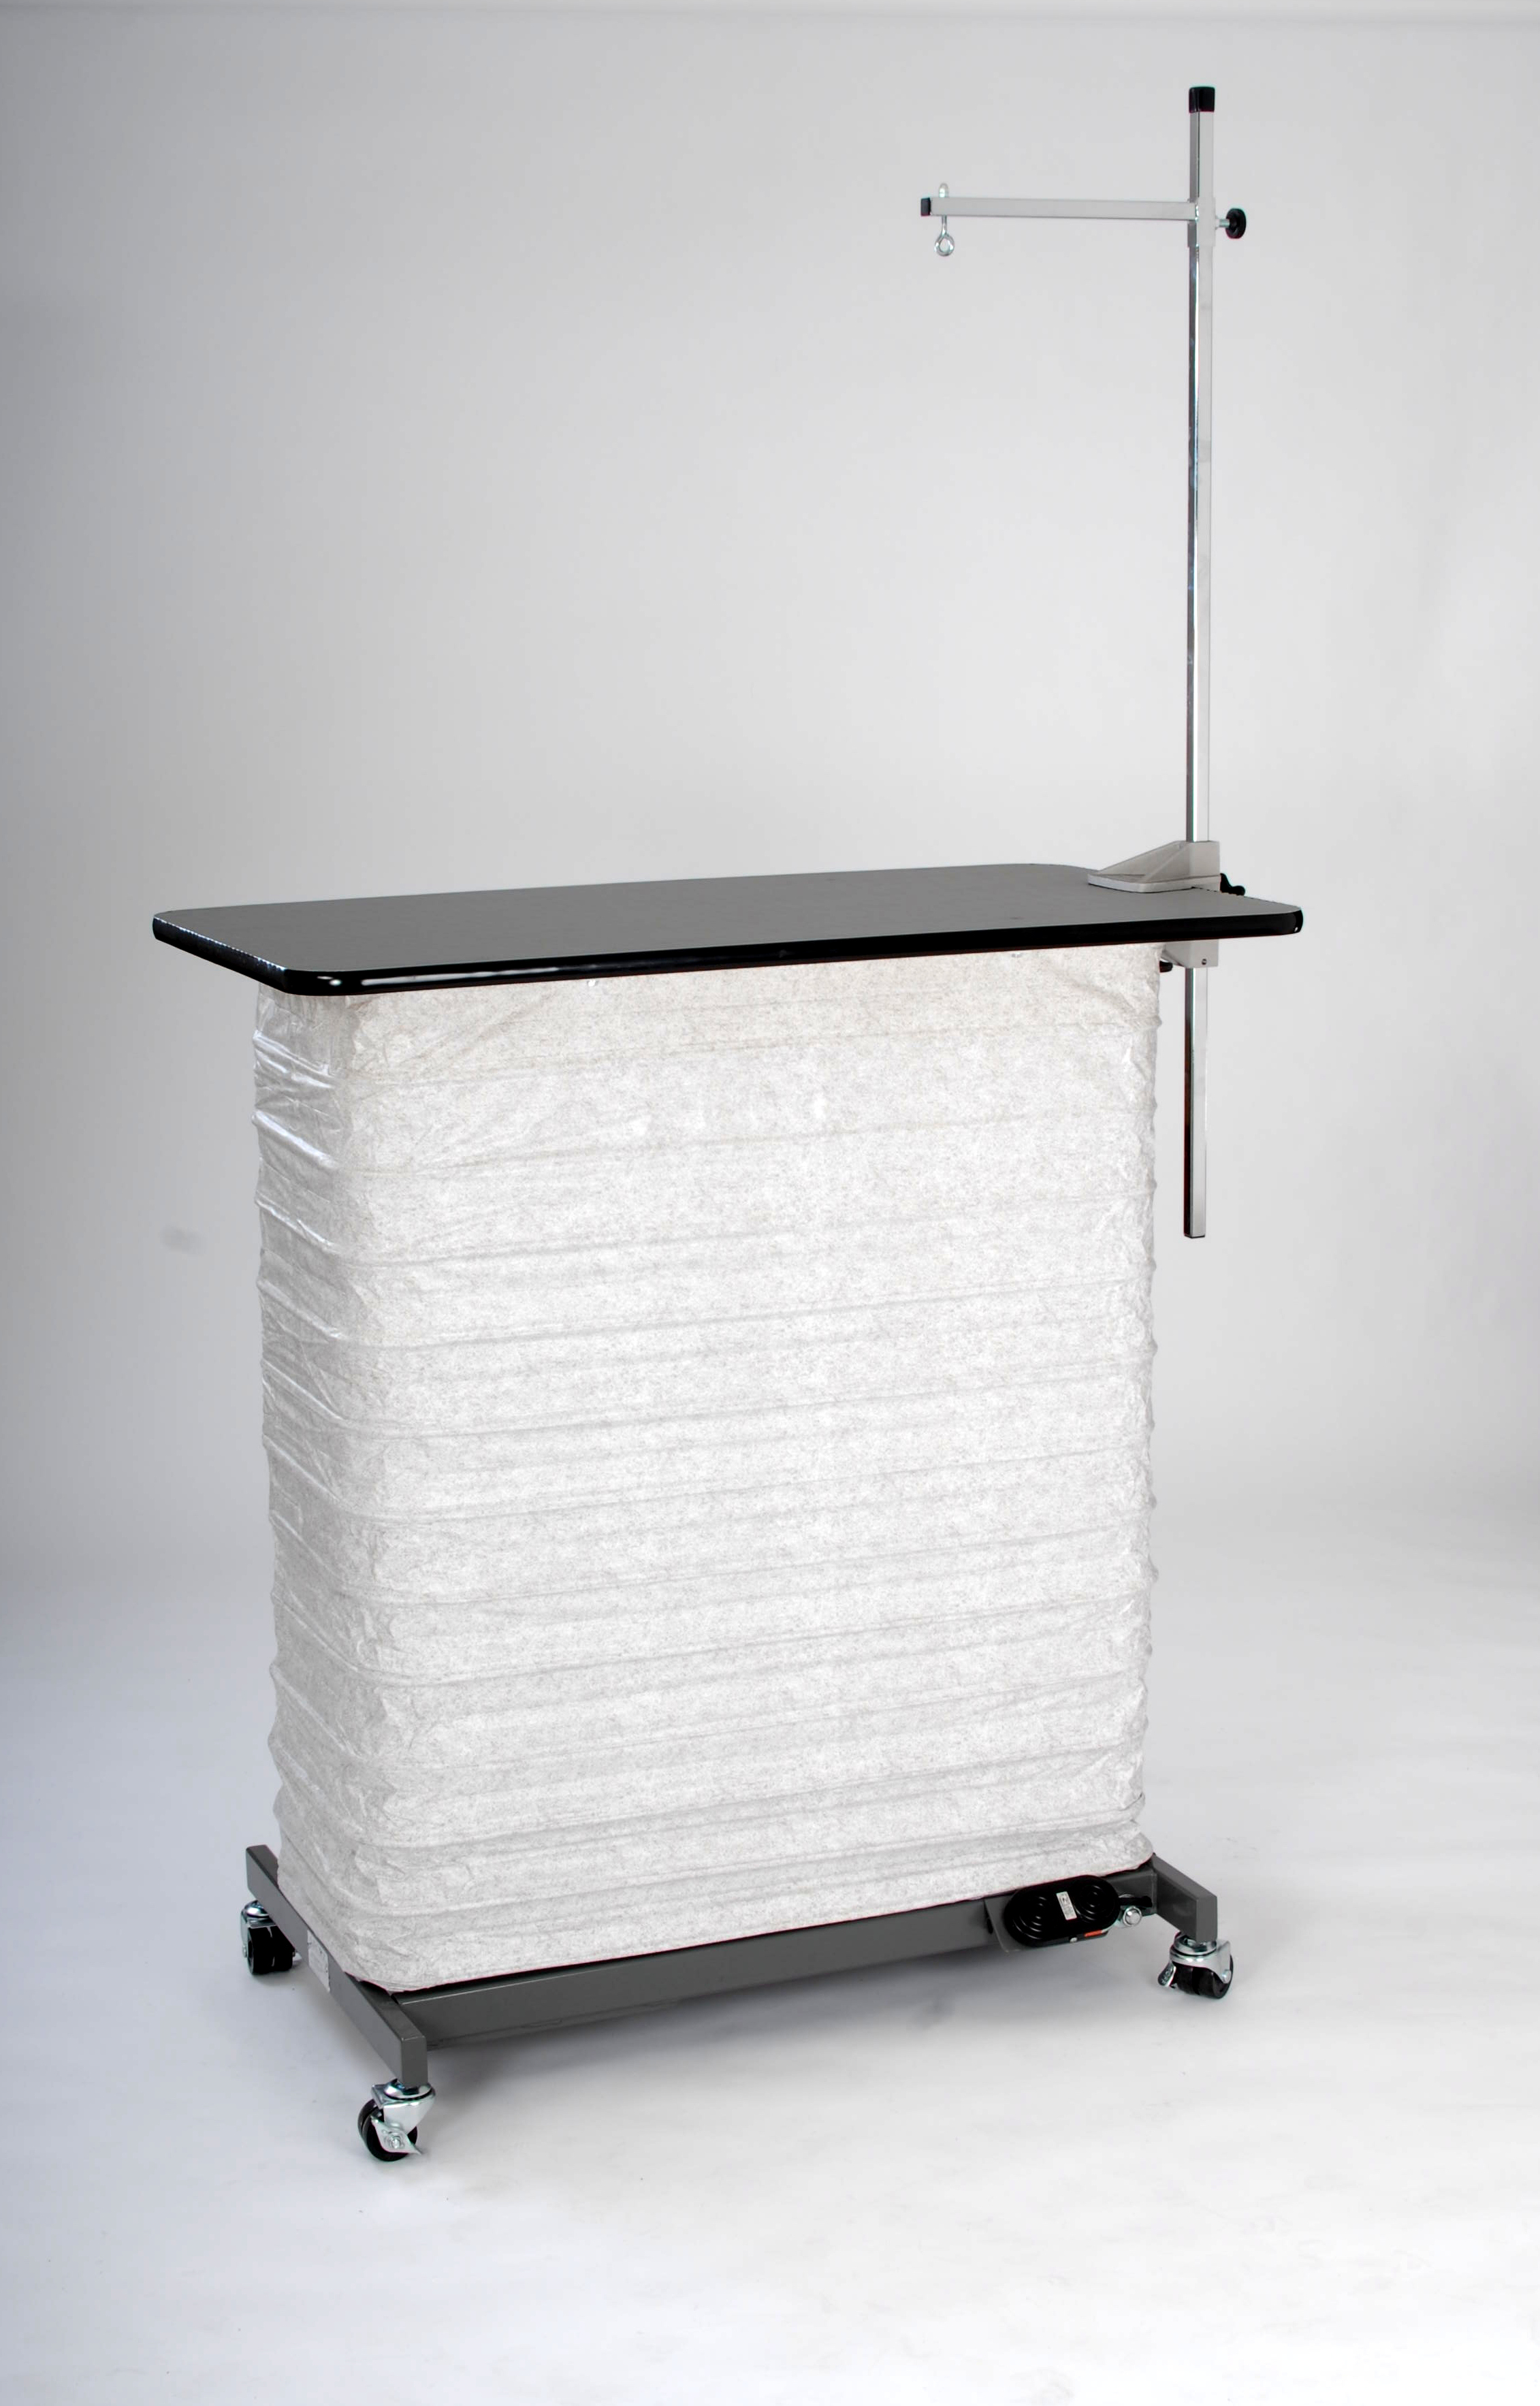 Amazing Electric Low Boy Dog Grooming Table Direct Animal Interior Design Ideas Tzicisoteloinfo